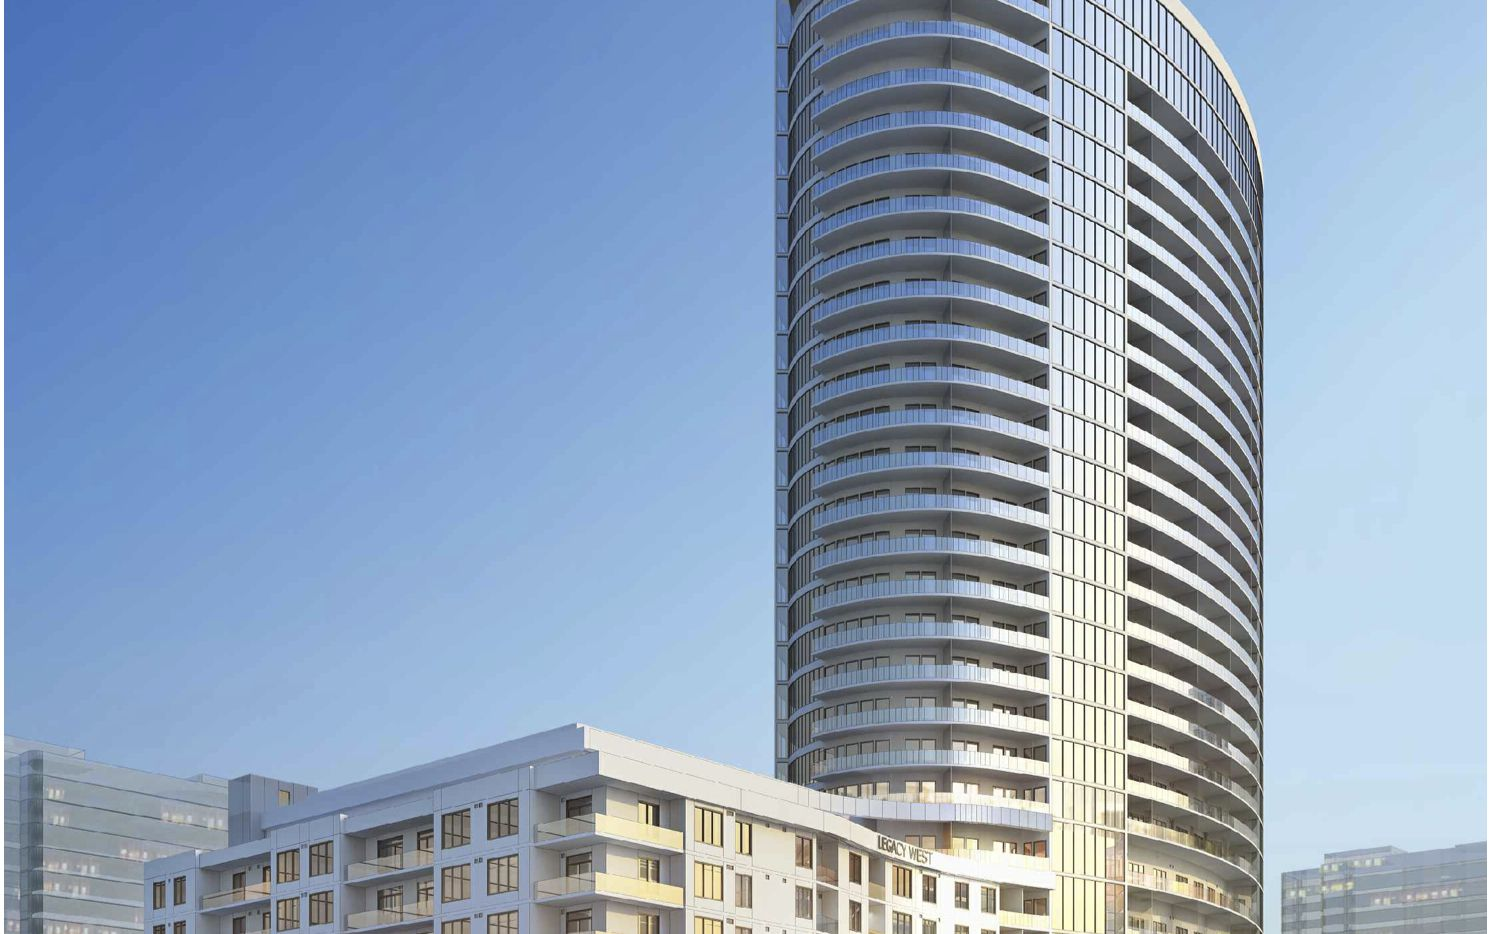 The LVL 29 apartment tower will open in 2019 in Legacy West.